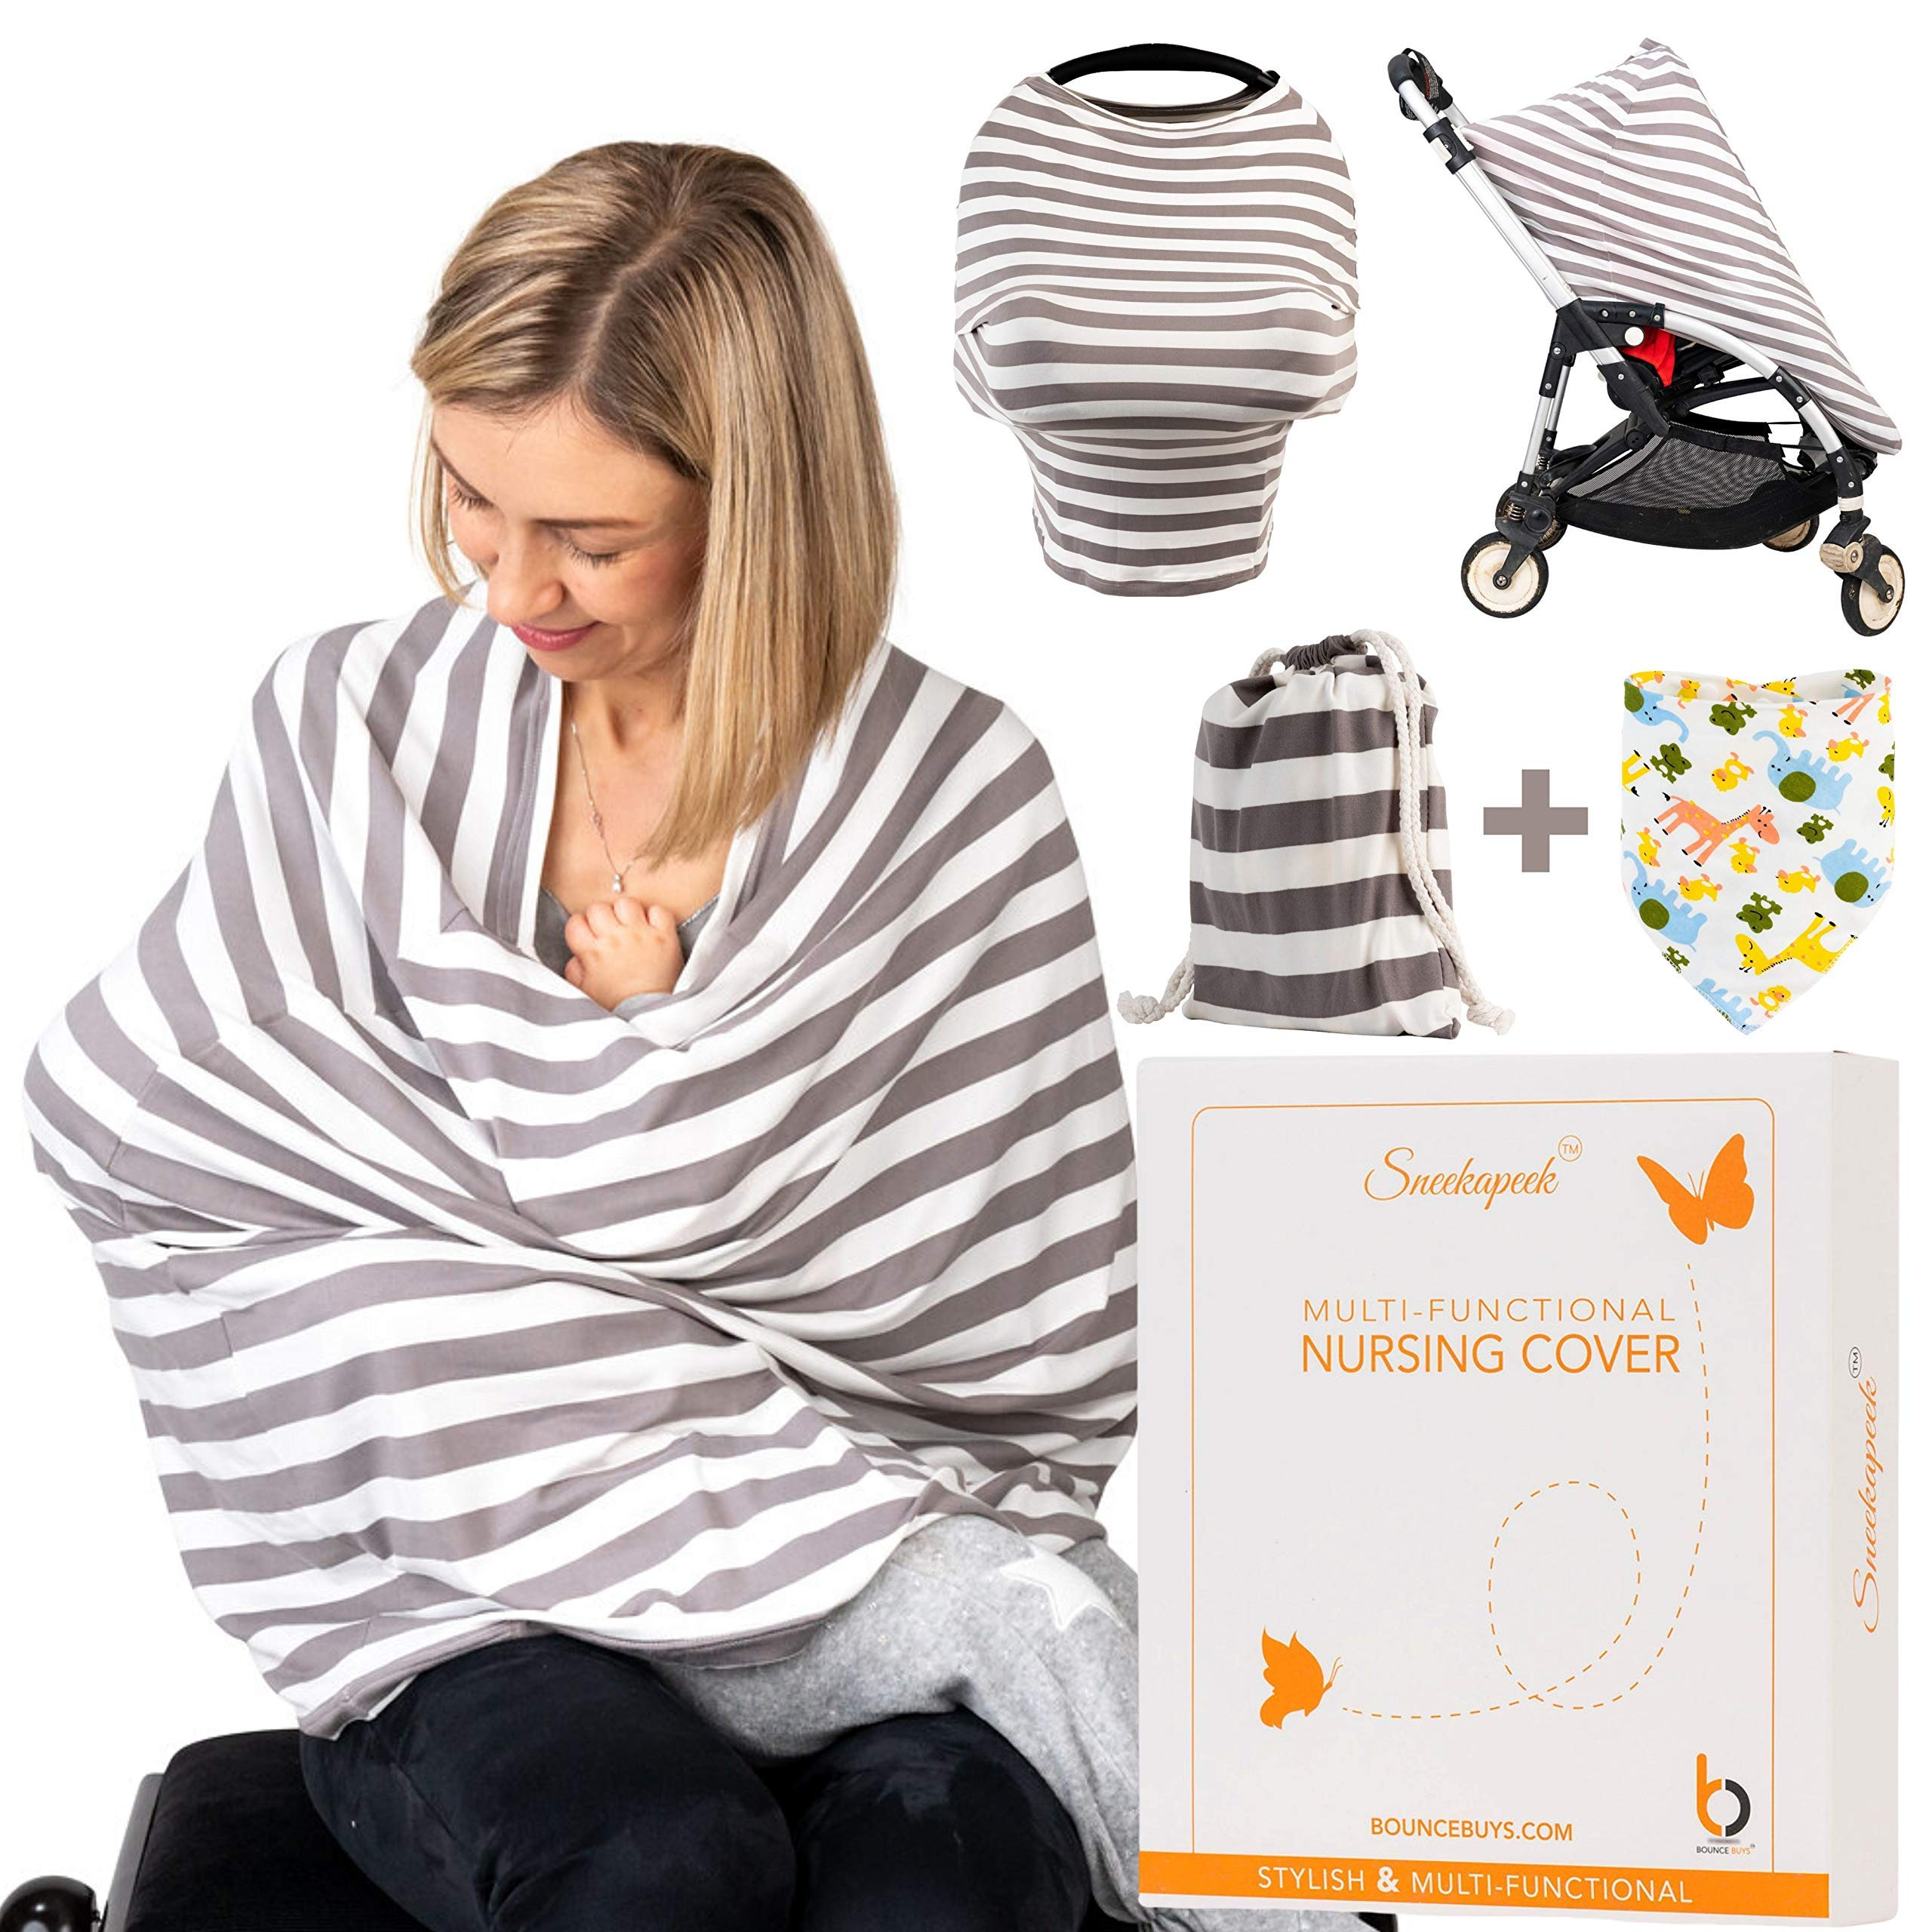 Breathable Soft Cotton Stroller Cover with Lace Screen Yarn Nursing Cover for Breastfeeding